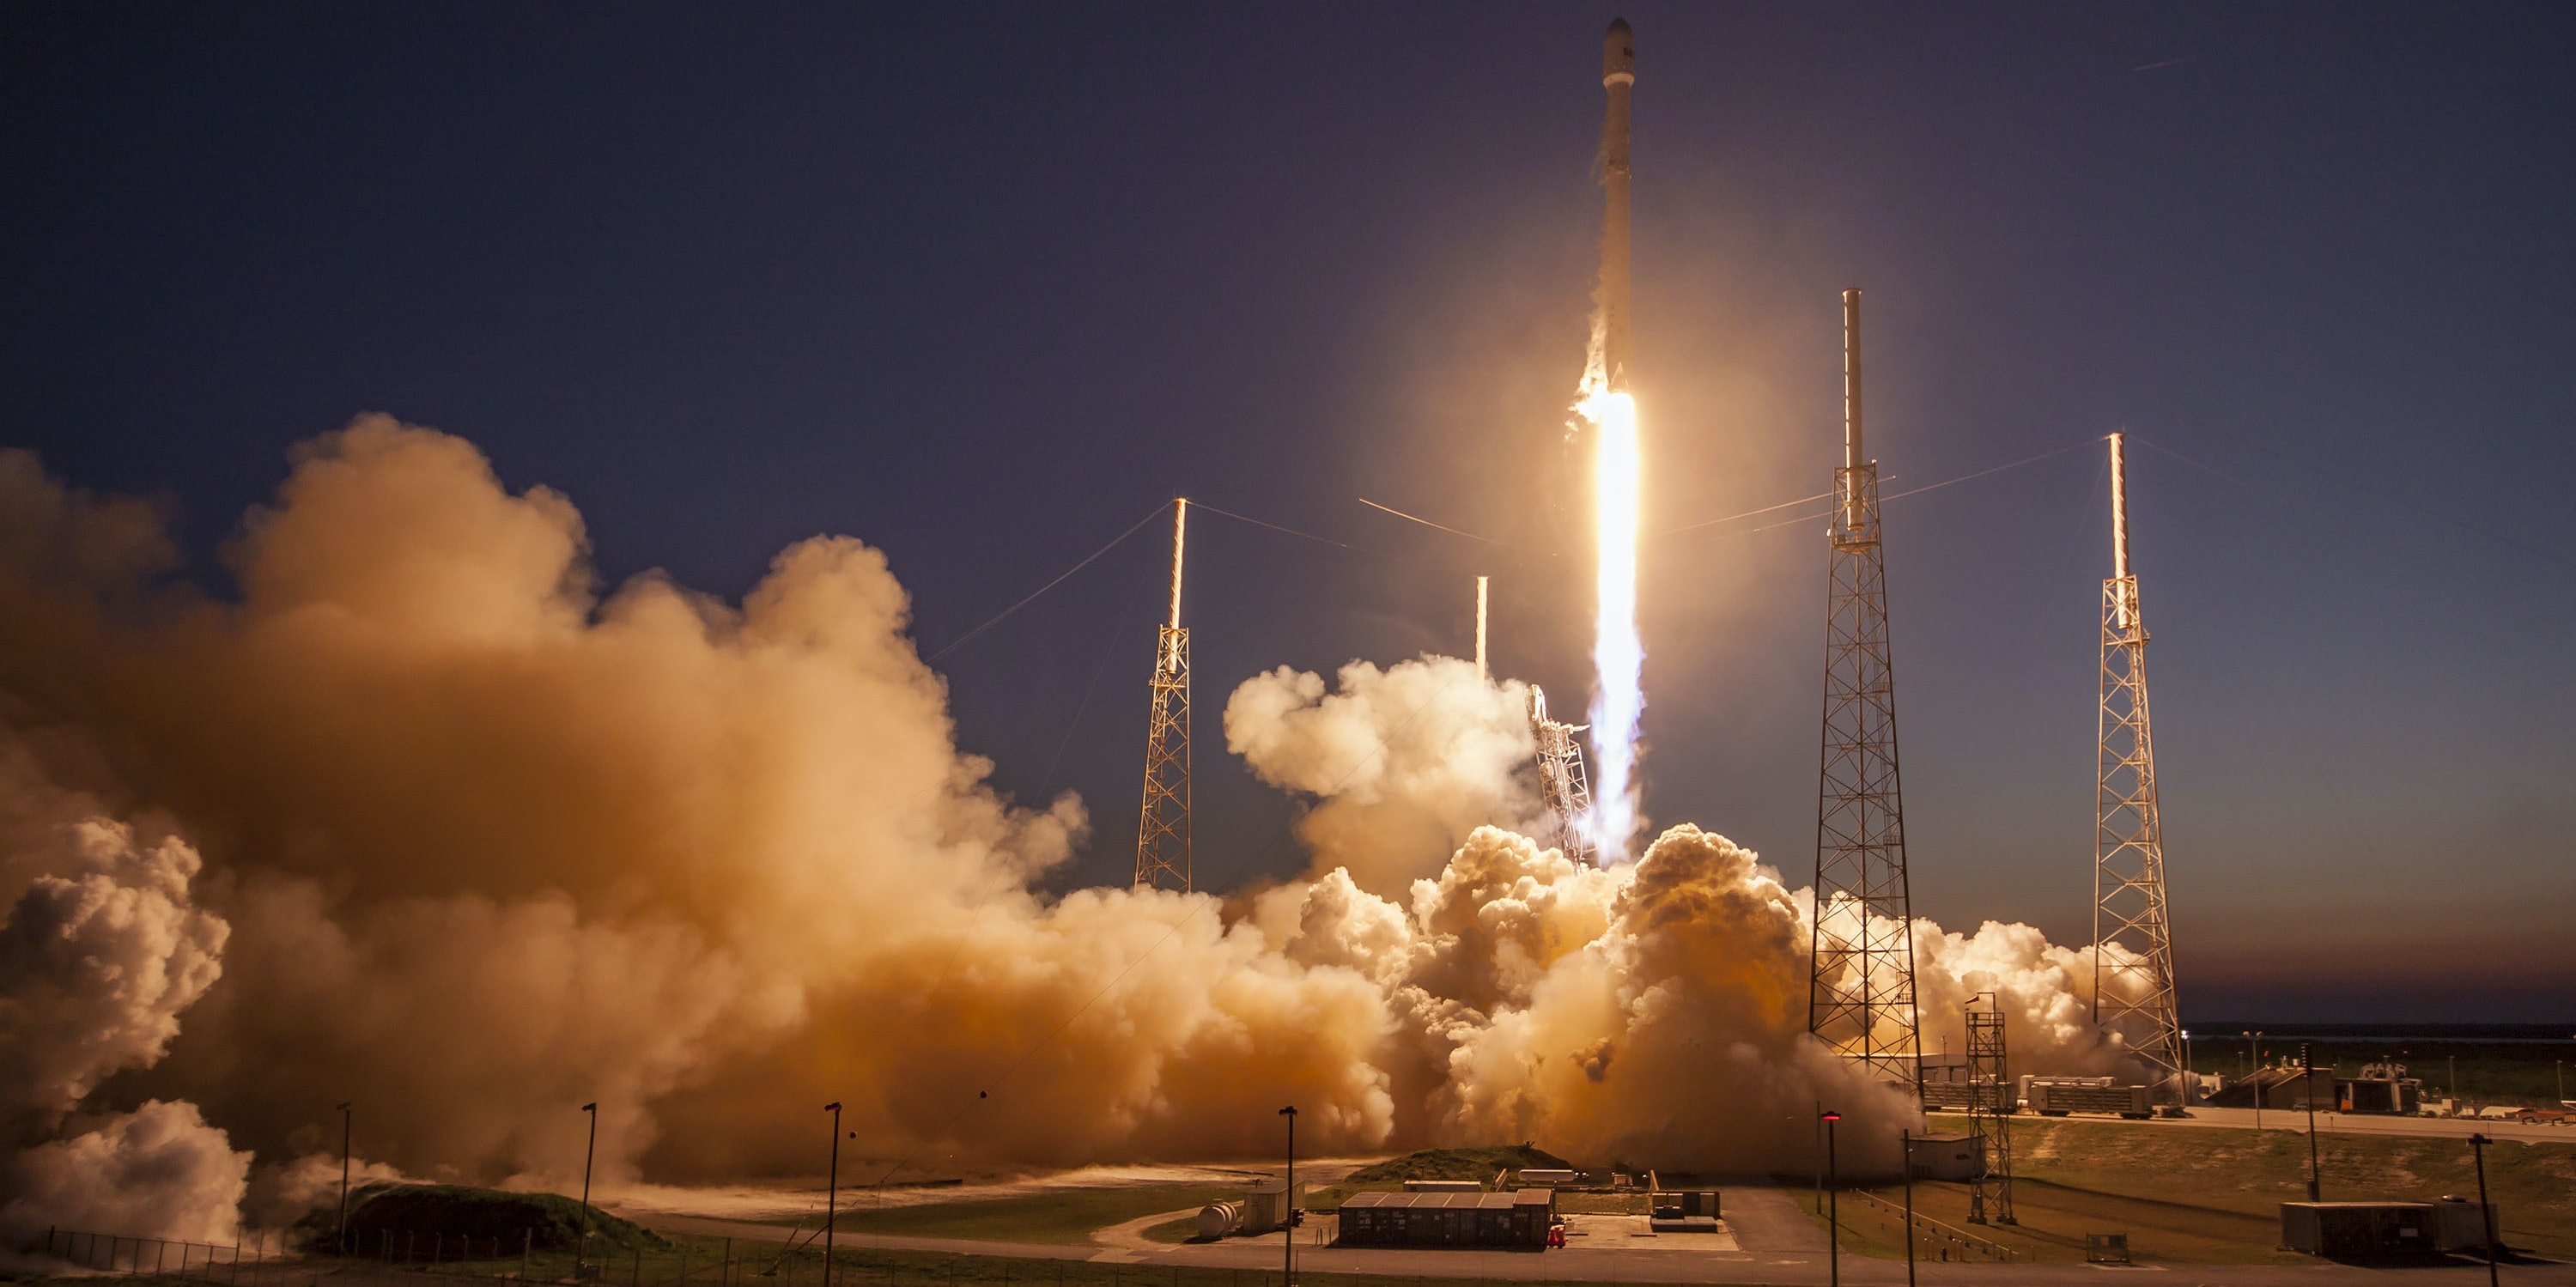 SpaceX Has Picked a Historic Location to Refurbish Its Rockets